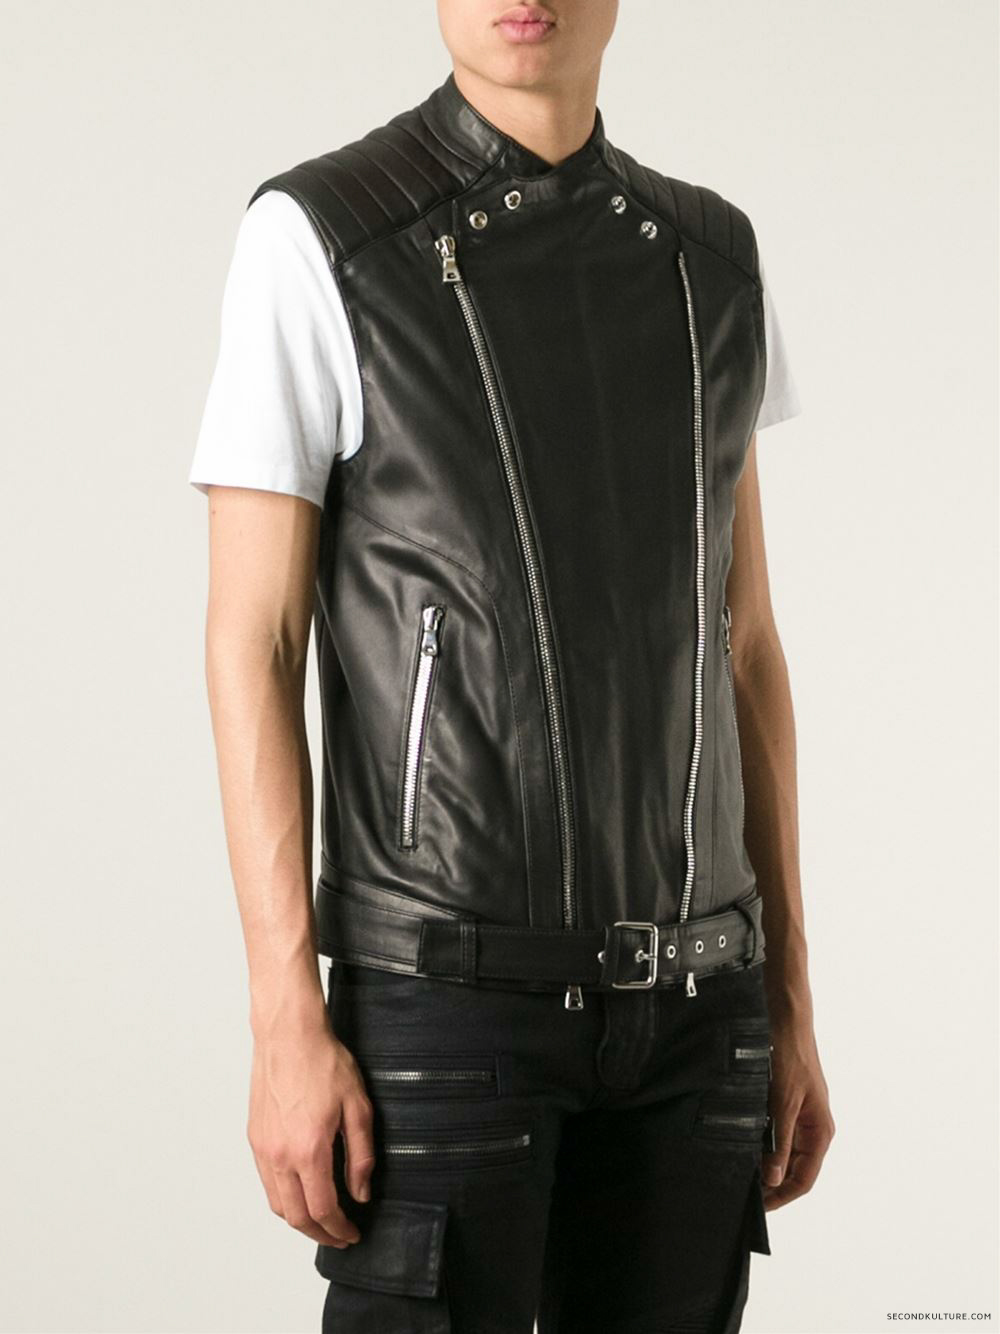 Balmain-Black-Biker-Leather-Zipped-Gilet-Vest-2015-2016-3